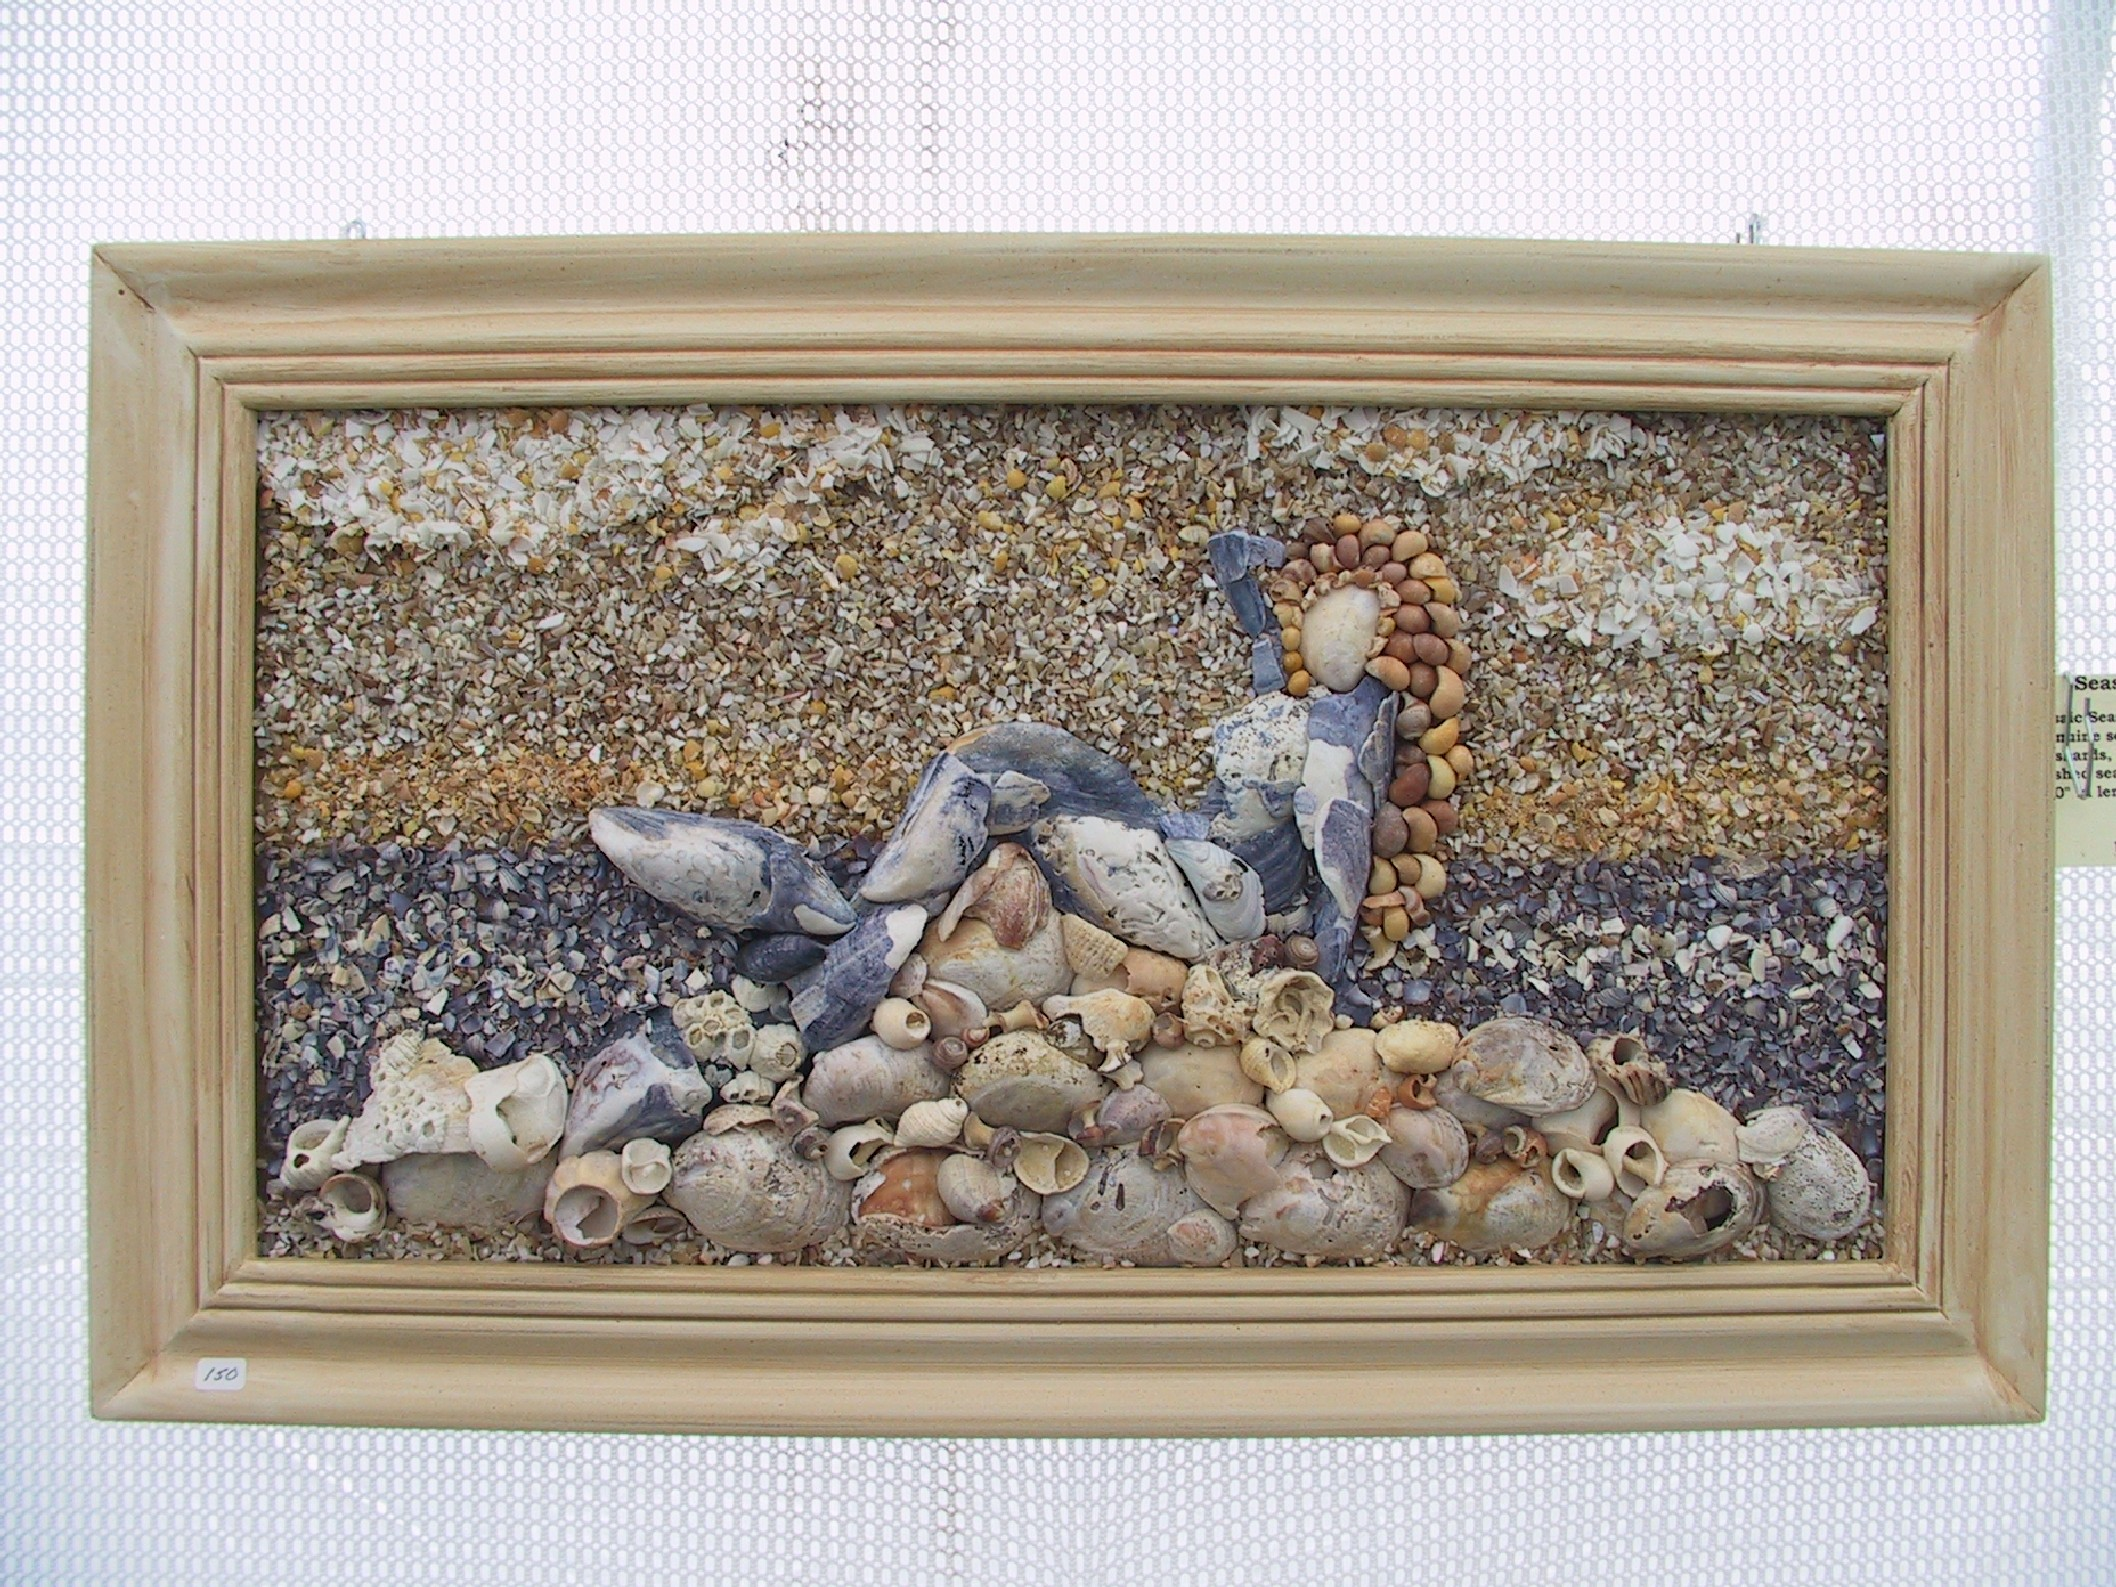 mussel-mermaid-framed